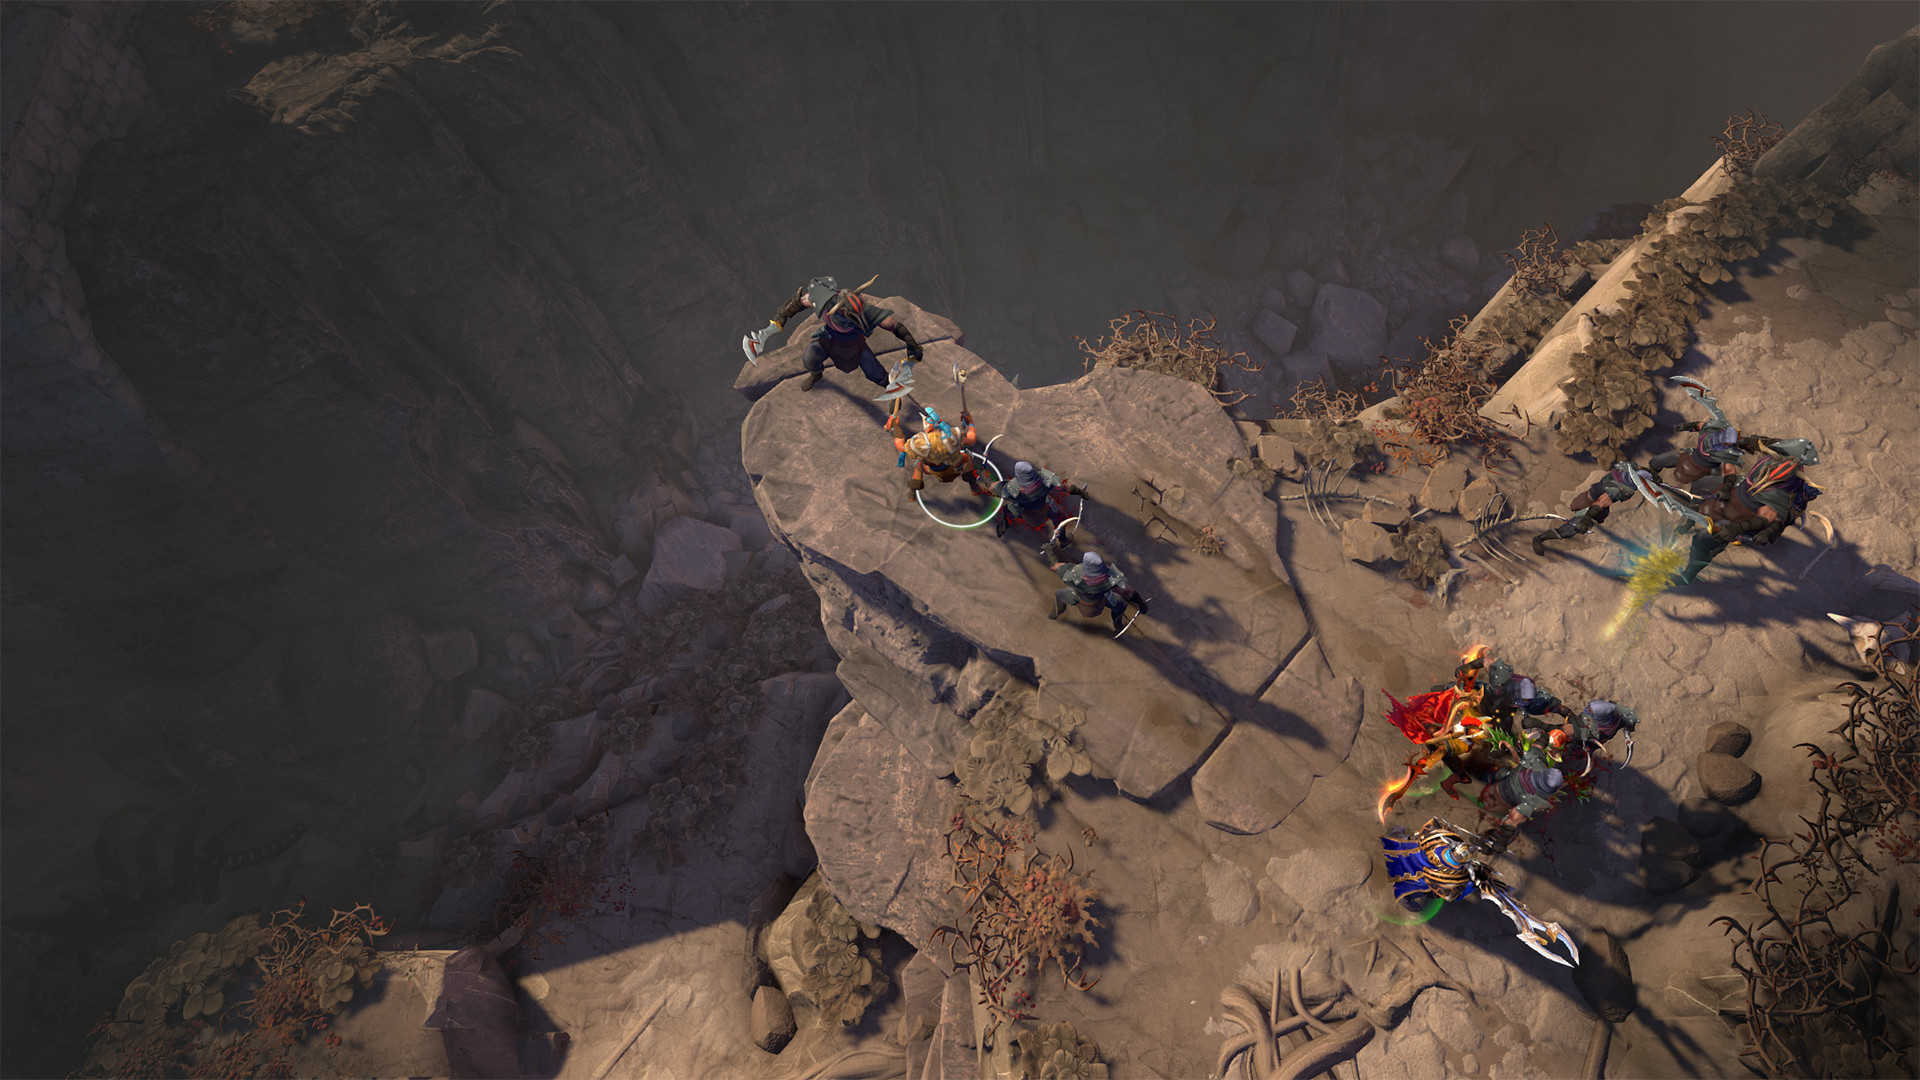 DOTA 2 to receive a co-op story campaign with this year's Battle